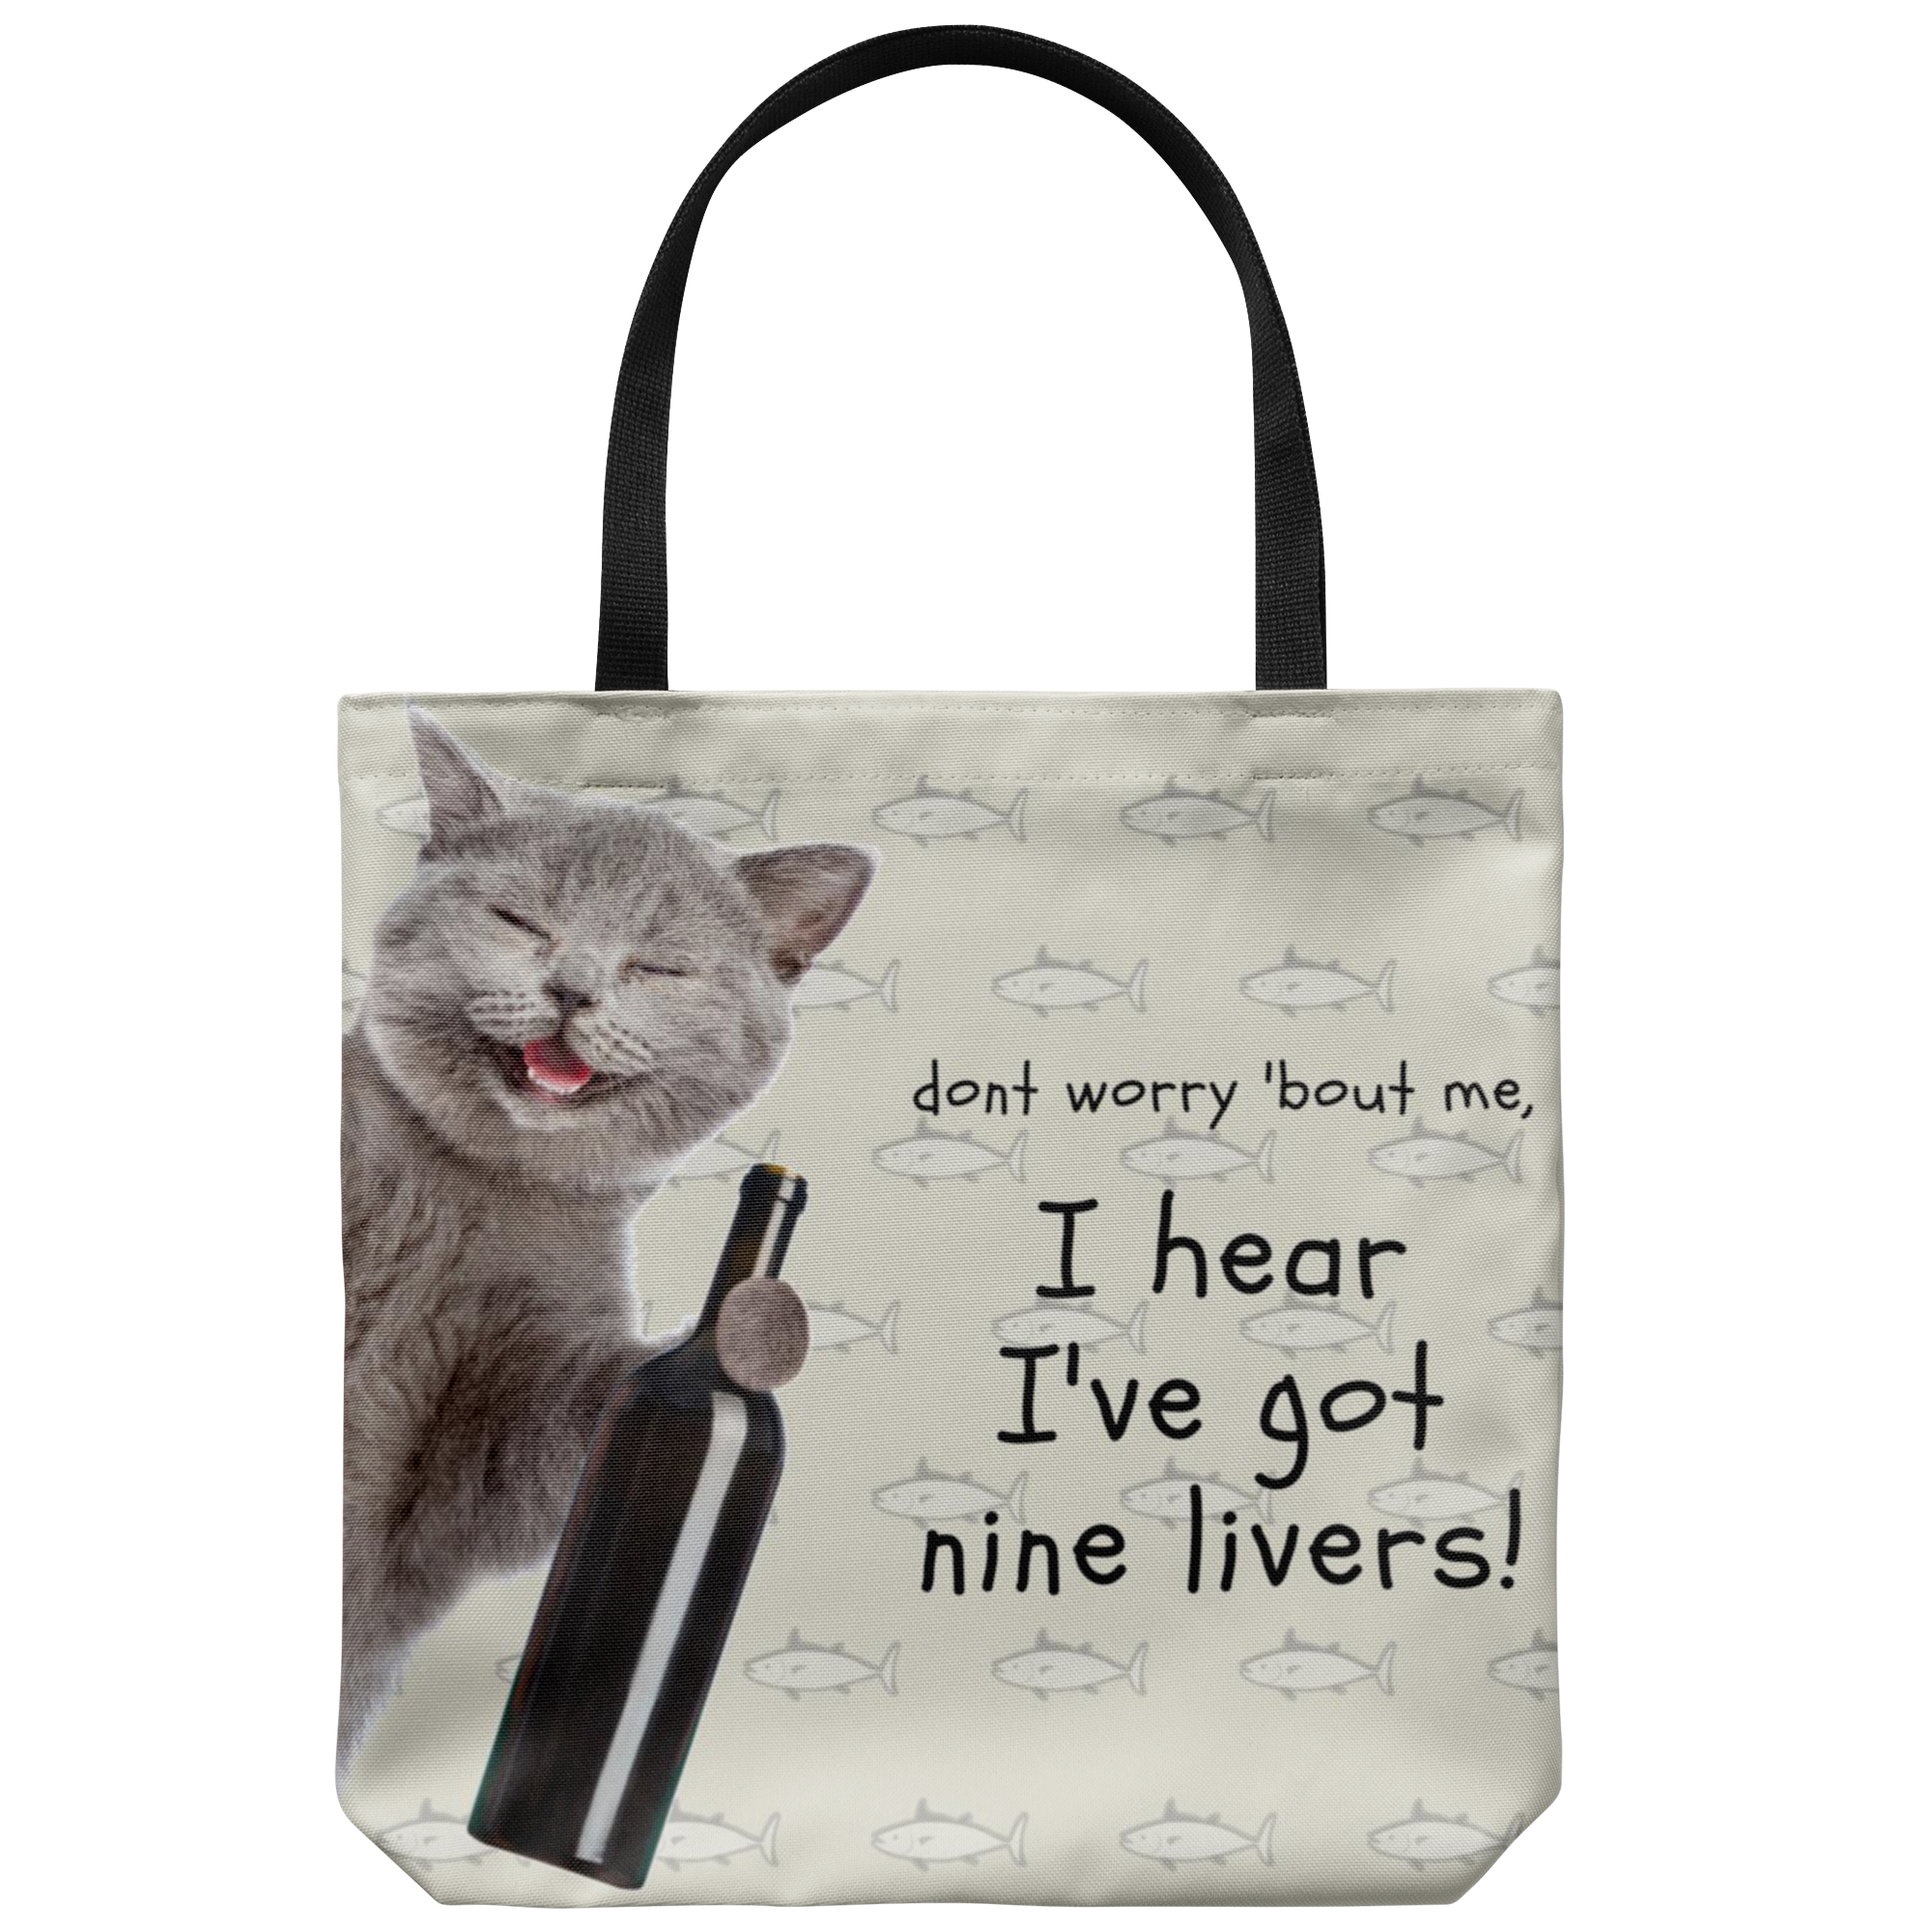 Drunk Cat Tote: don't worry 'bout me, I hear I've got nine livers!